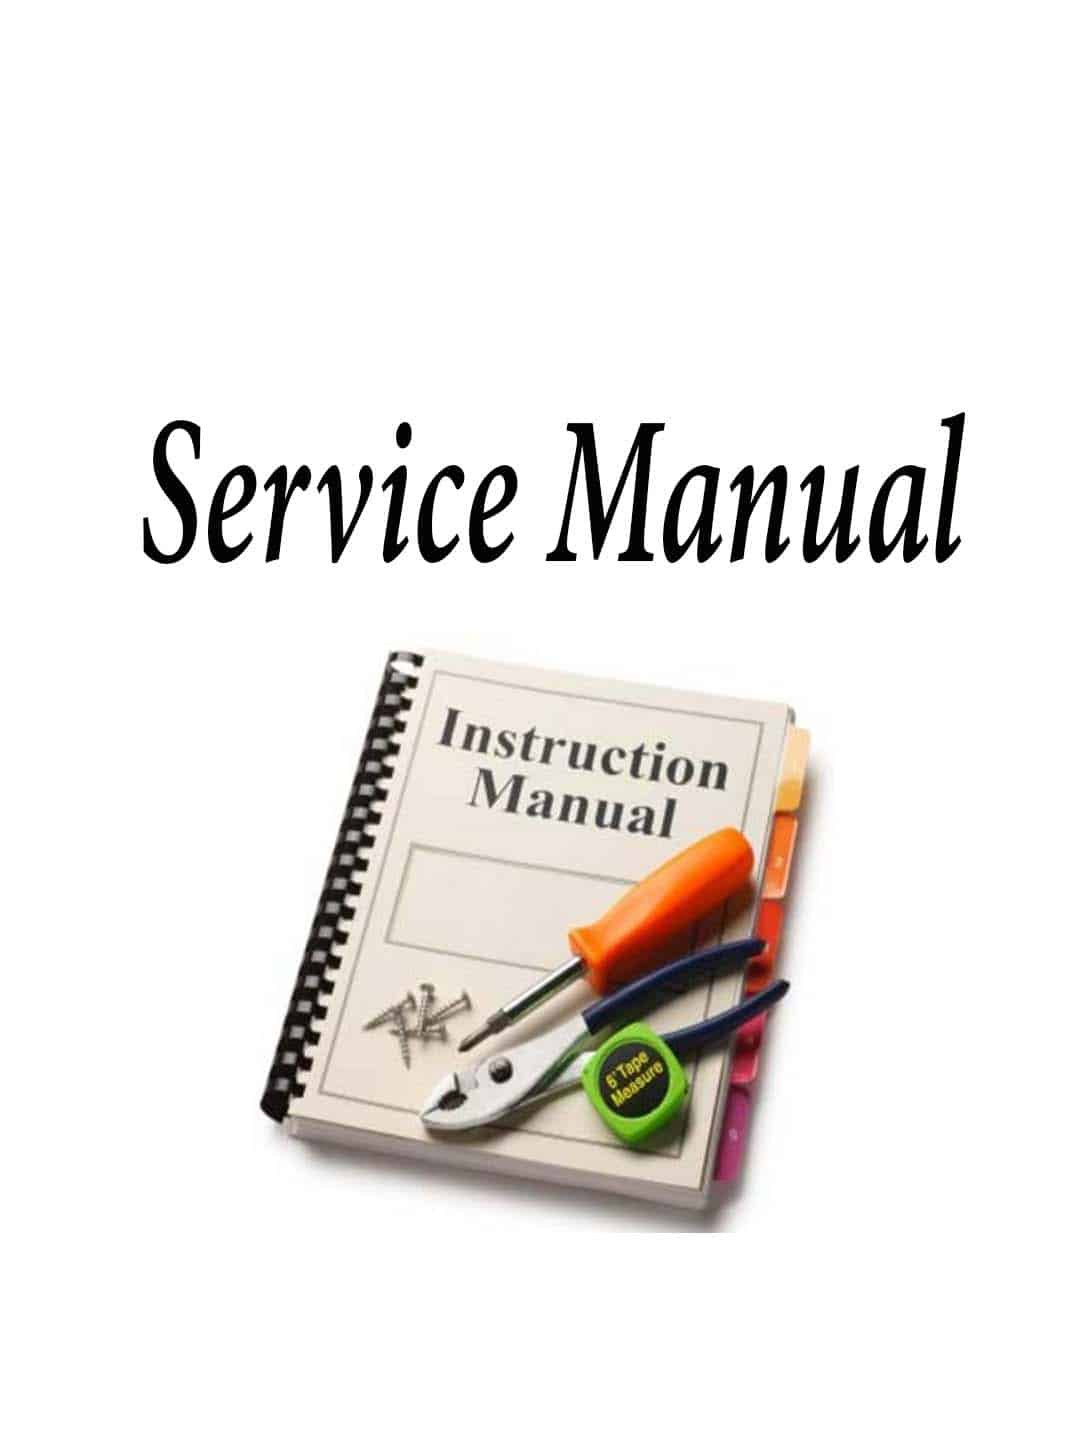 SMMCB10A - Service Manual For Mcb10A